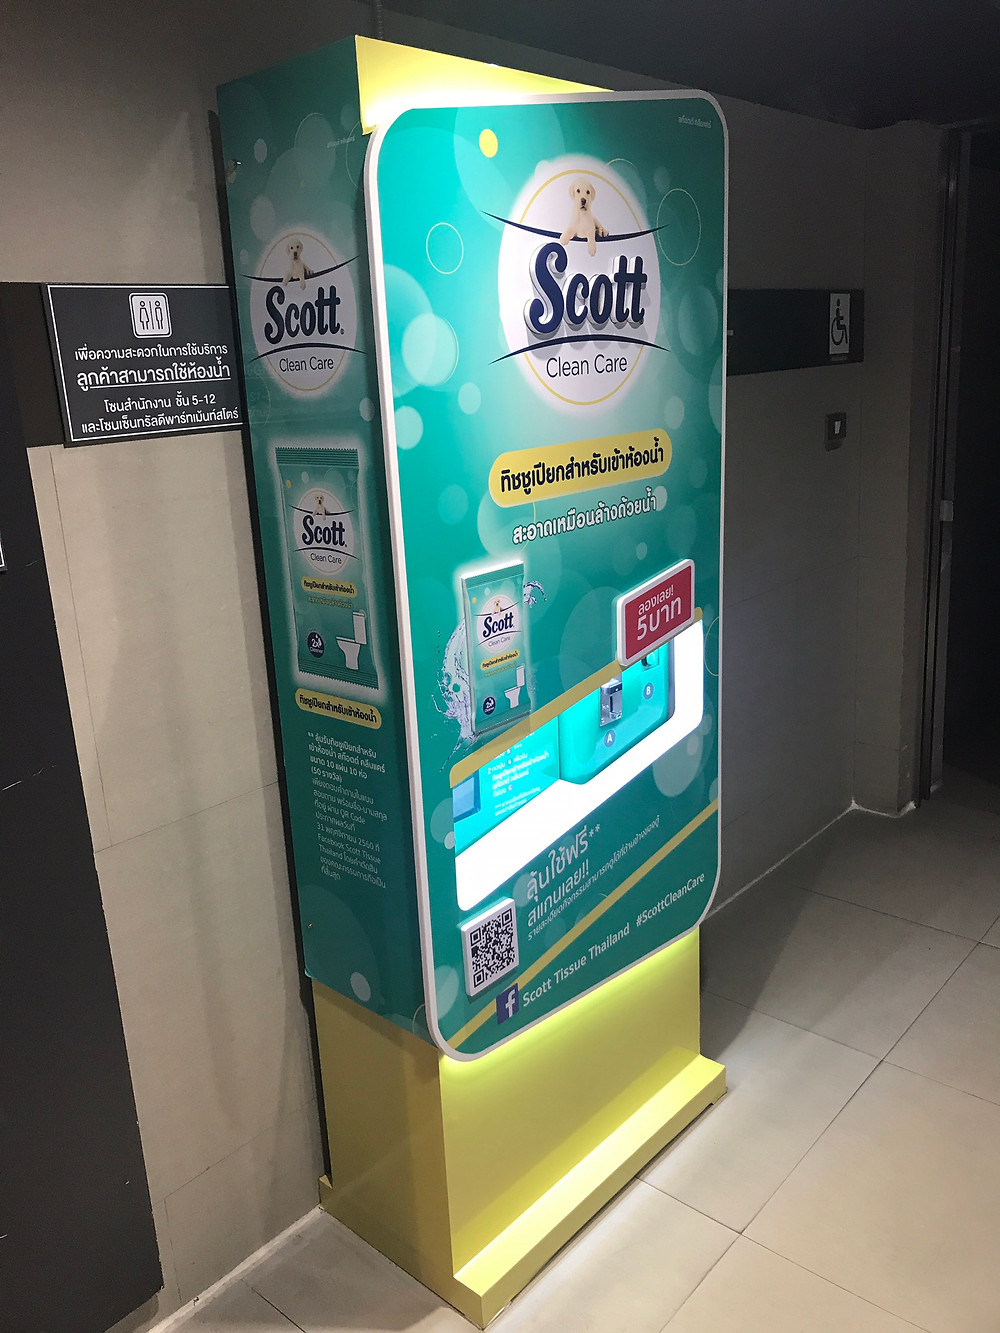 Scott Tissue Vending Machine